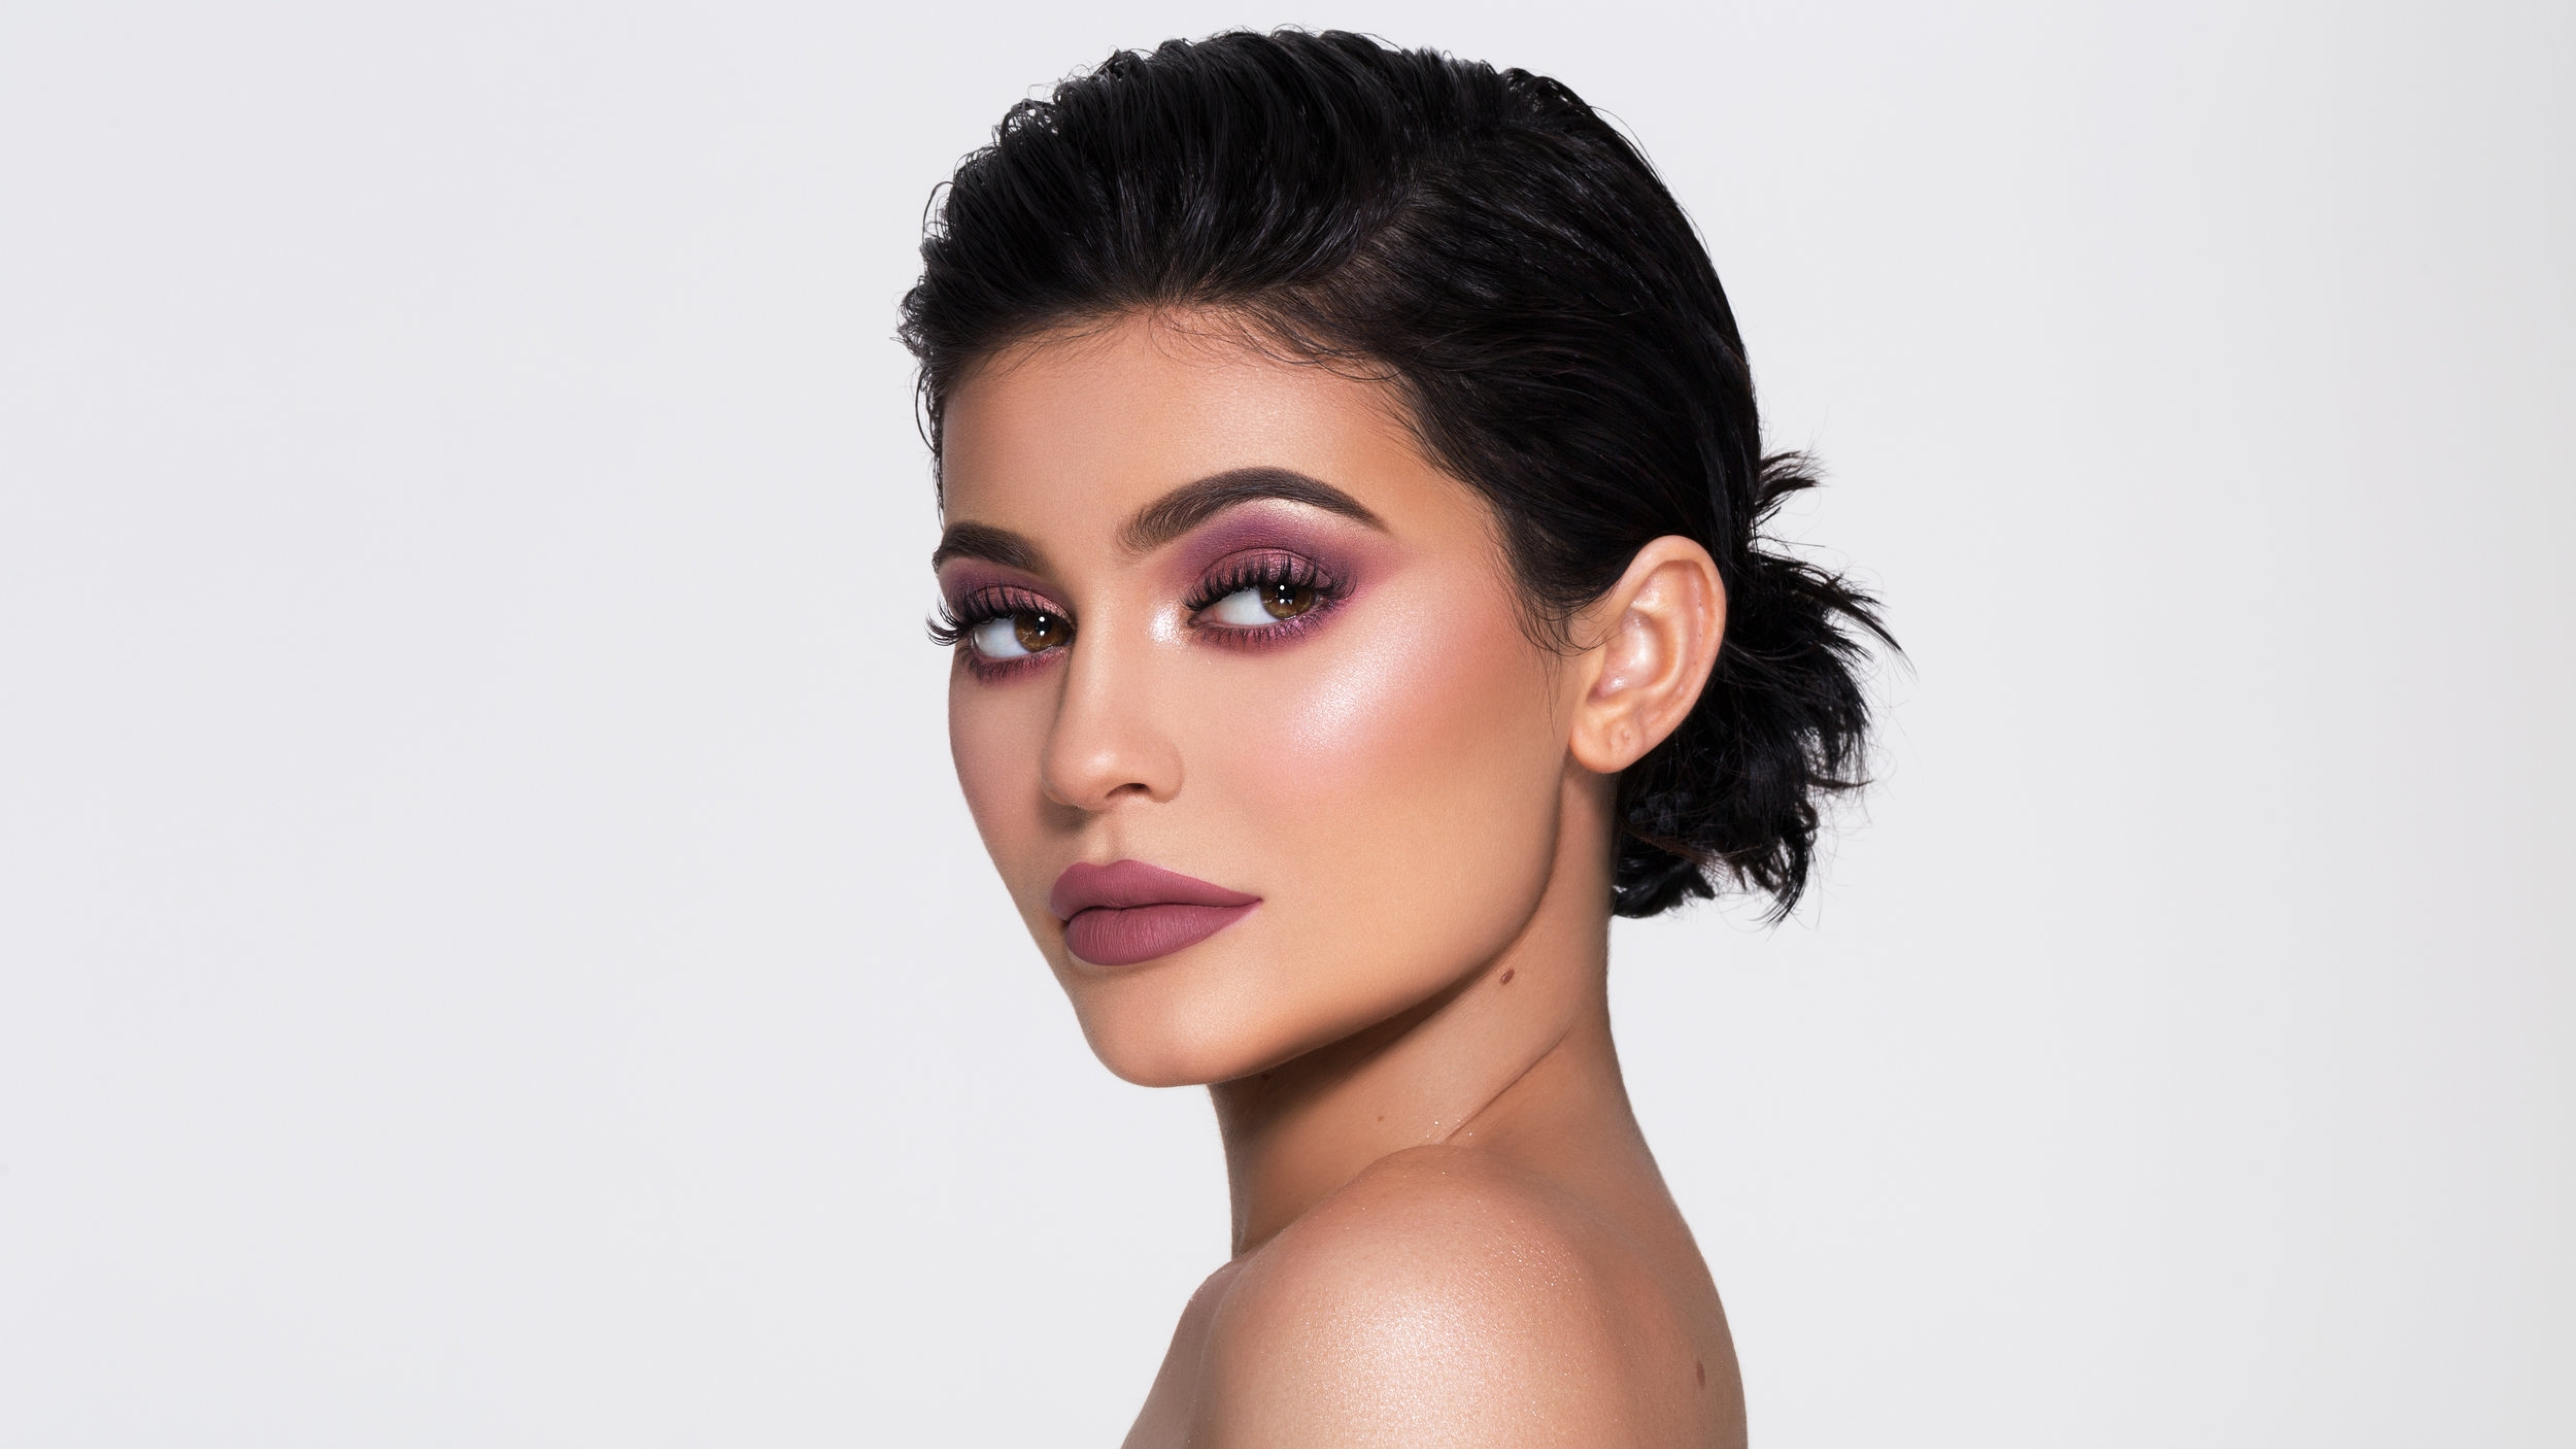 Kylie Jenner 2017 Hd Wallpapers: Kylie Jenner Cosmetics Campaign 2017, Full HD 2K Wallpaper